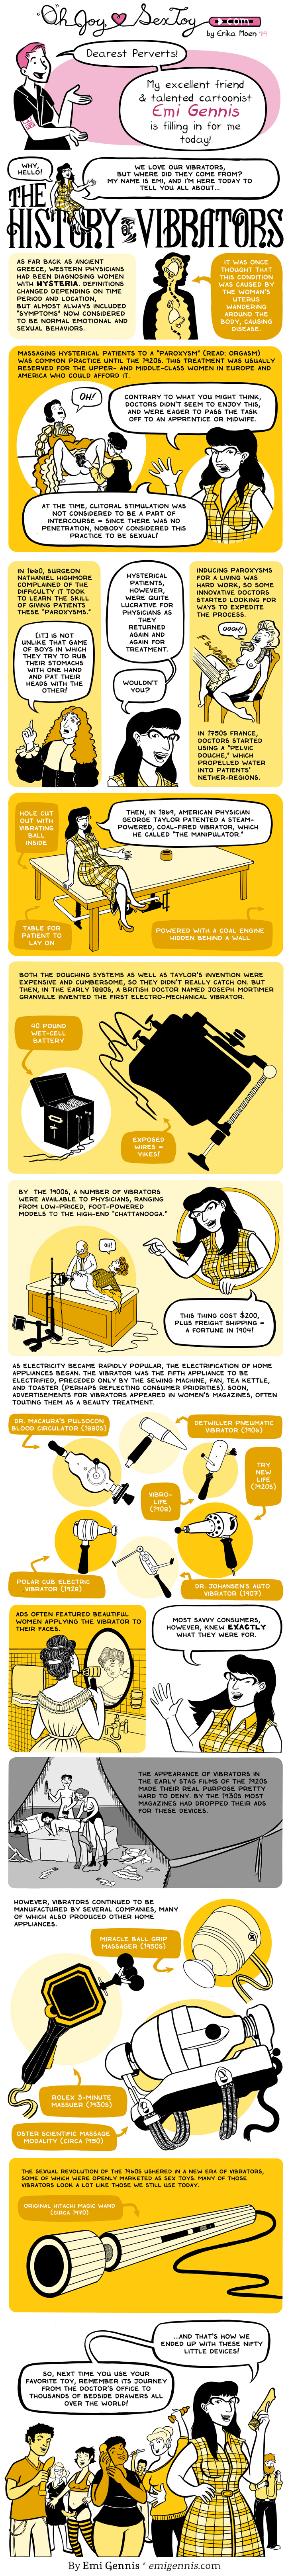 a comic about the history of vibrators